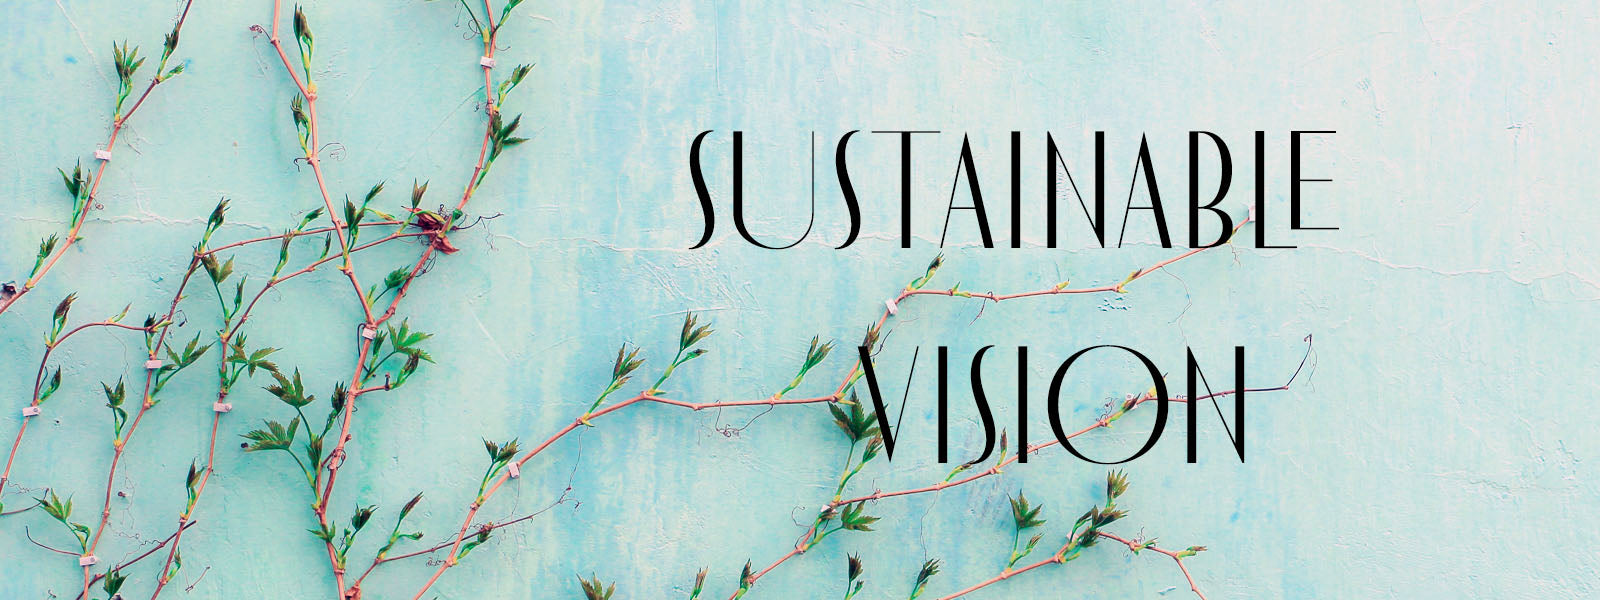 Sustainable Vision - Sustainable Fashion Brand - Ada's Attic Vintage